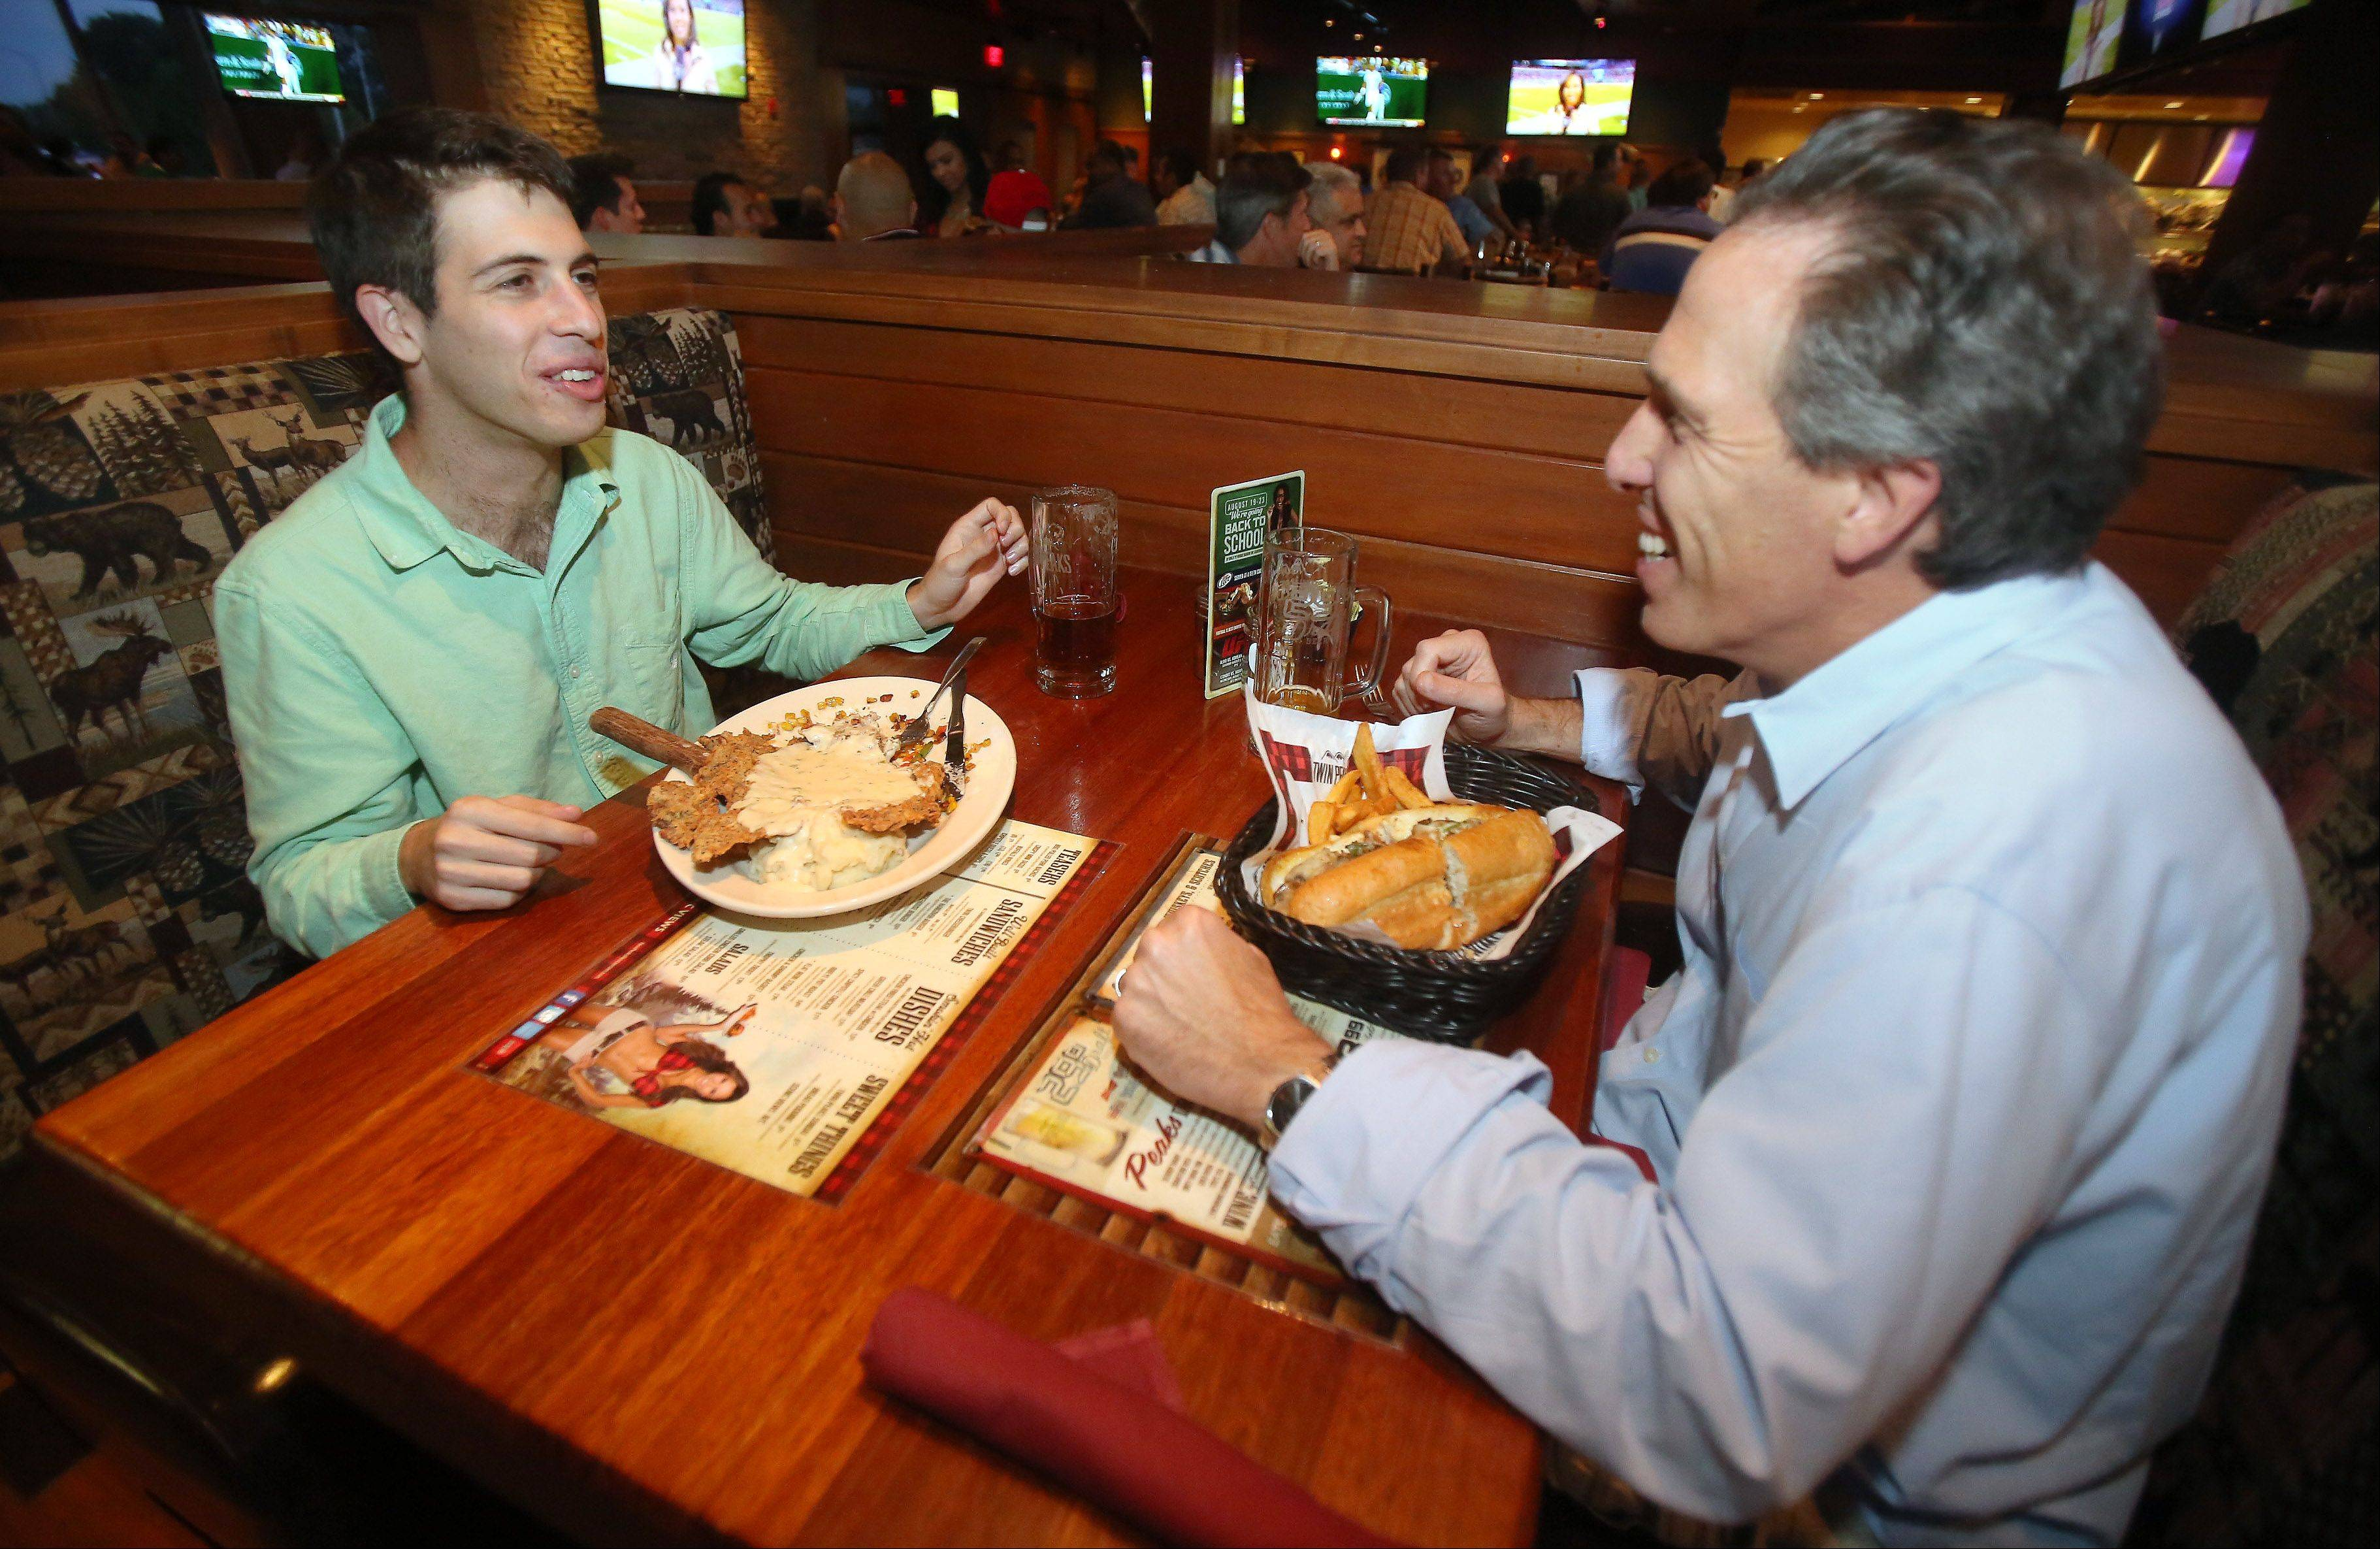 Daniel Cohen, left, of Buffalo Grove enjoys an oversized chicken-fried steak as he has dinner with his father, Mike, at Twin Peaks.